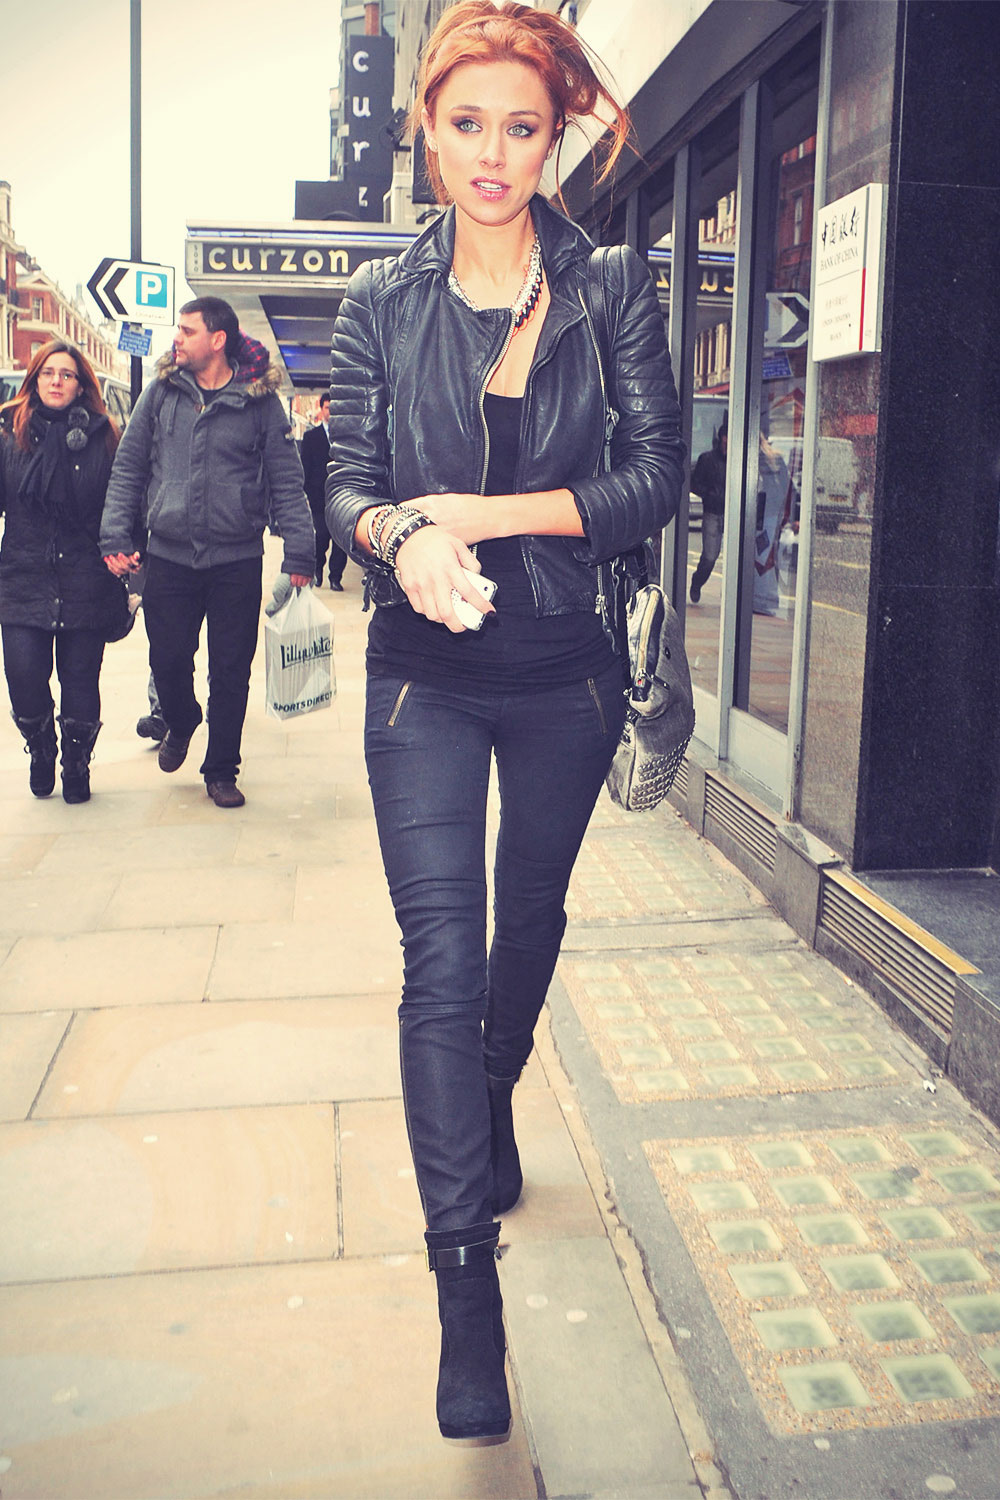 Una Healy visiting the dentist in London